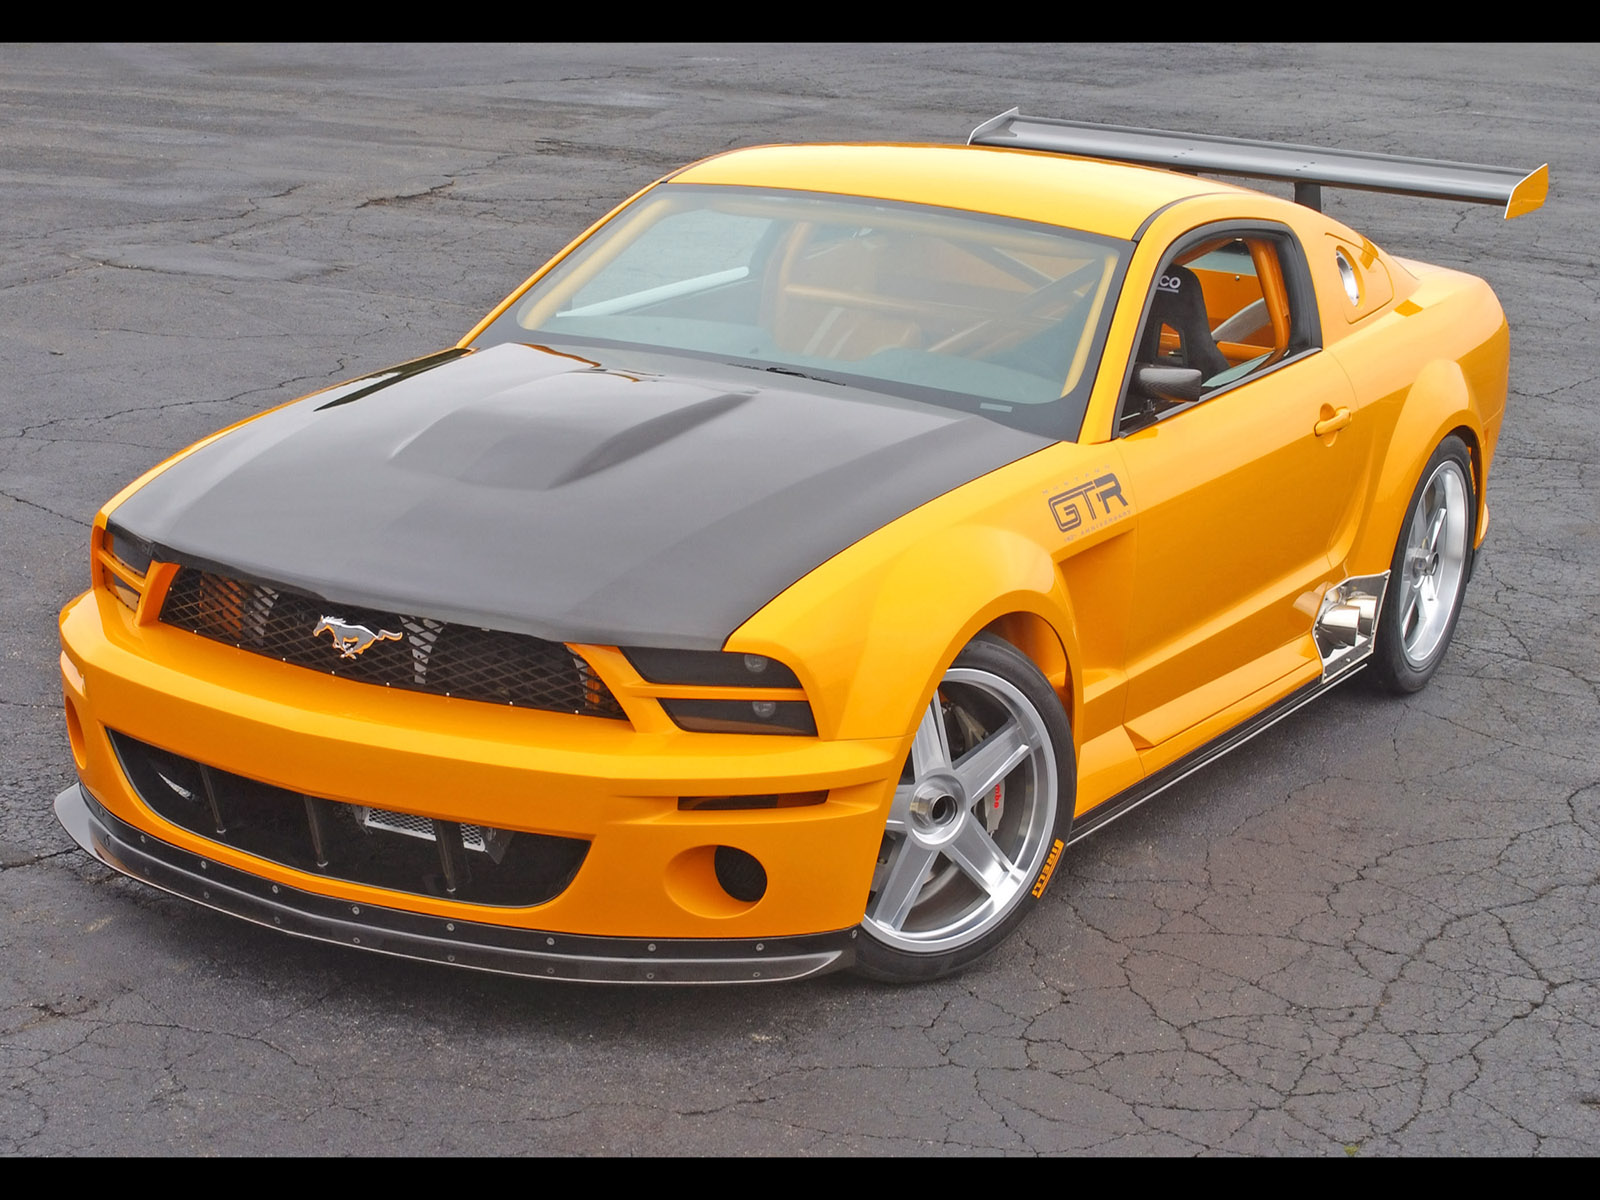 mustang gt ford 2005 concept cars gtr fast mustangs saleen front hood boss shelby voitures conceptcarz without babes rate above